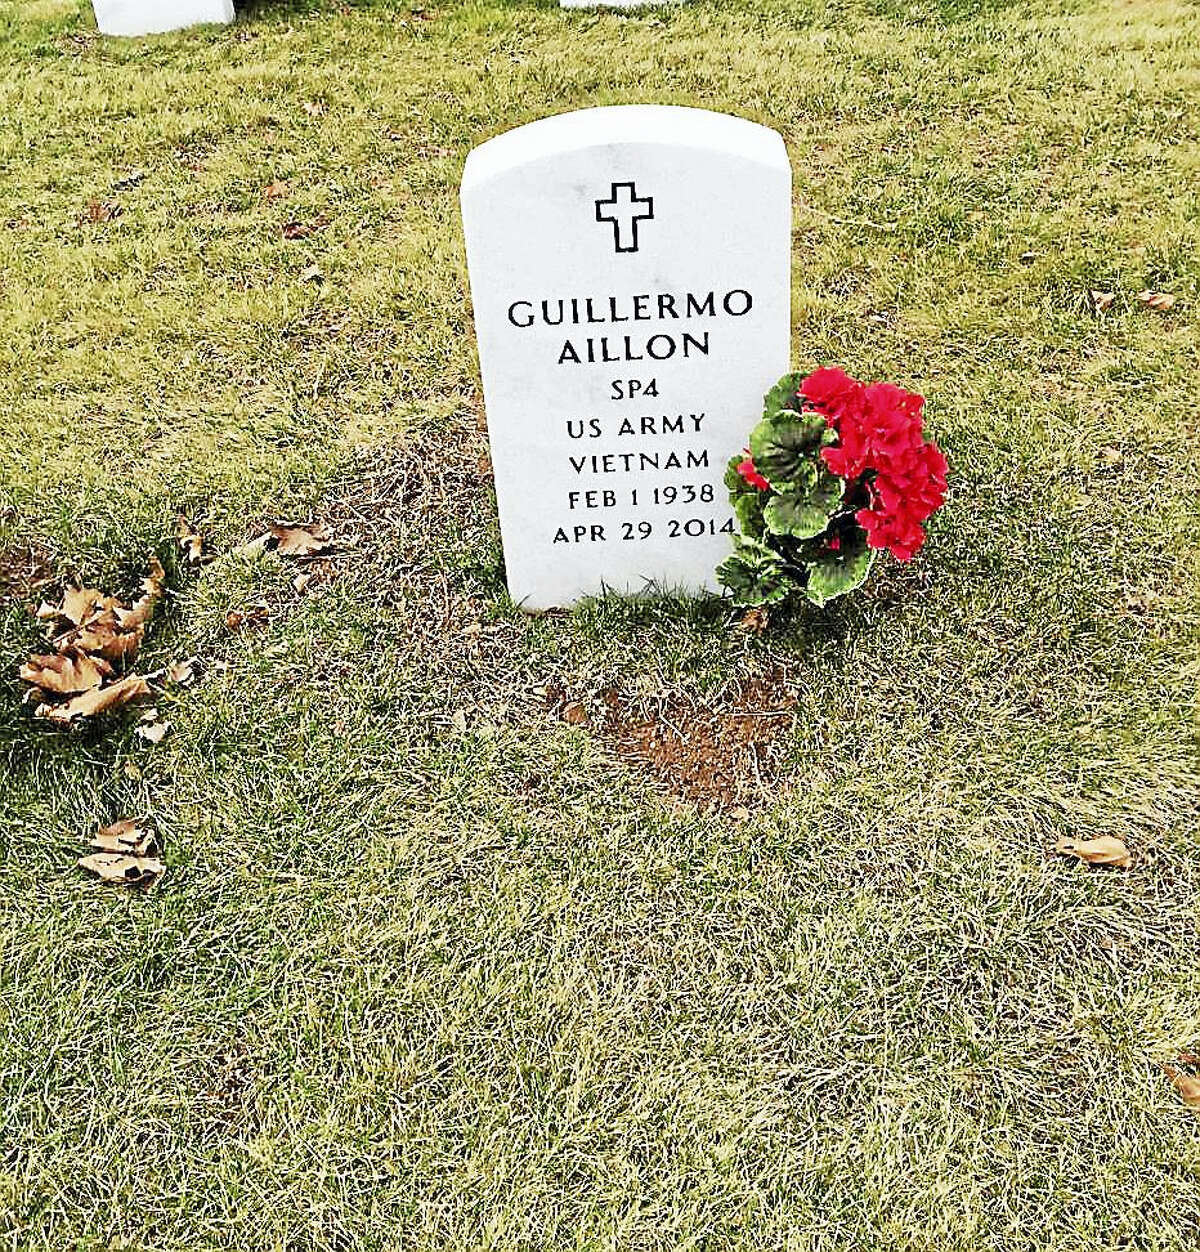 The gravestone of Guillermo Aillon at the State Veterans Cemetery in Middletown last week. It has since been removed.